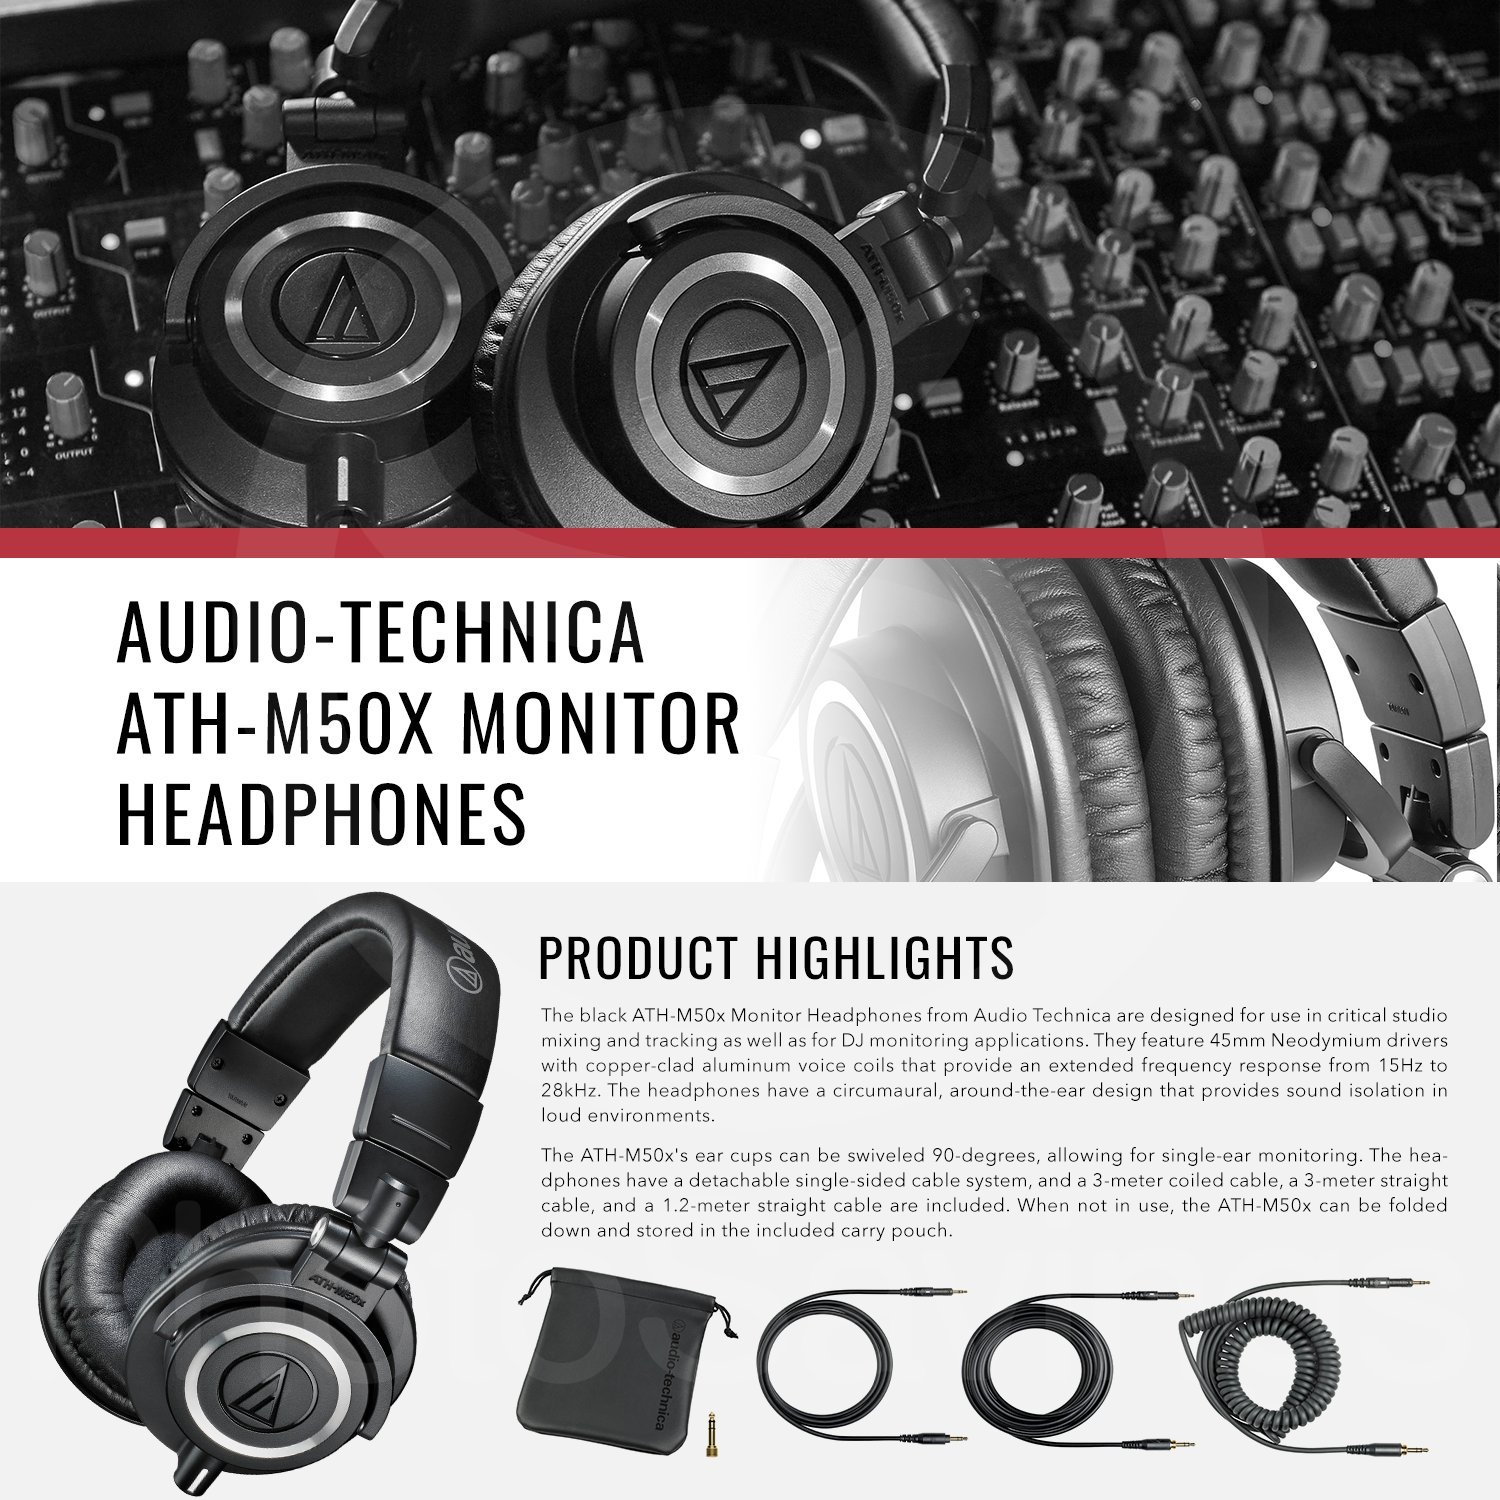 Audio Technica Ath M50x Professional Monitor Headphones M40x Monitoring Headphone And Deluxe Accessory Bundle With Amplifier Protective Case More Musical